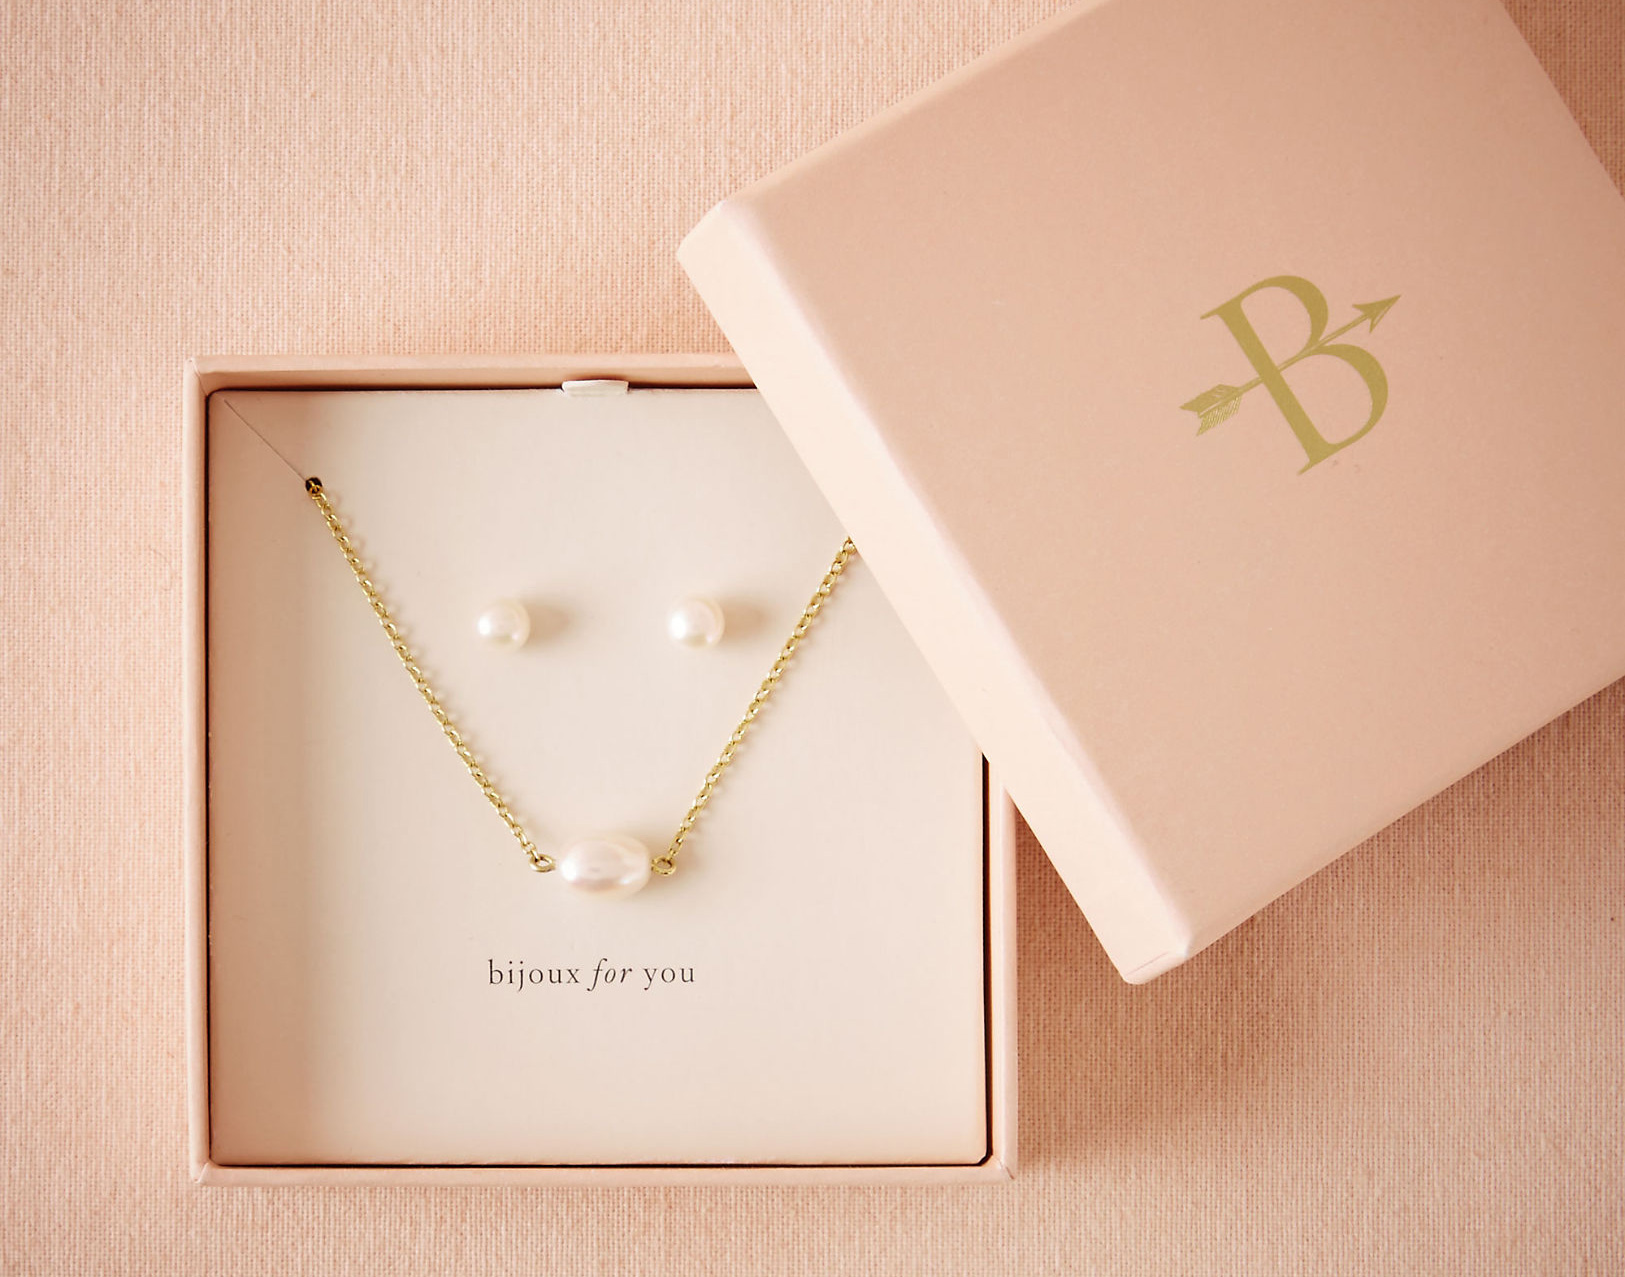 Pearl Bijoux for You earring and necklace gift set BHLDN bridesmaid present ideas